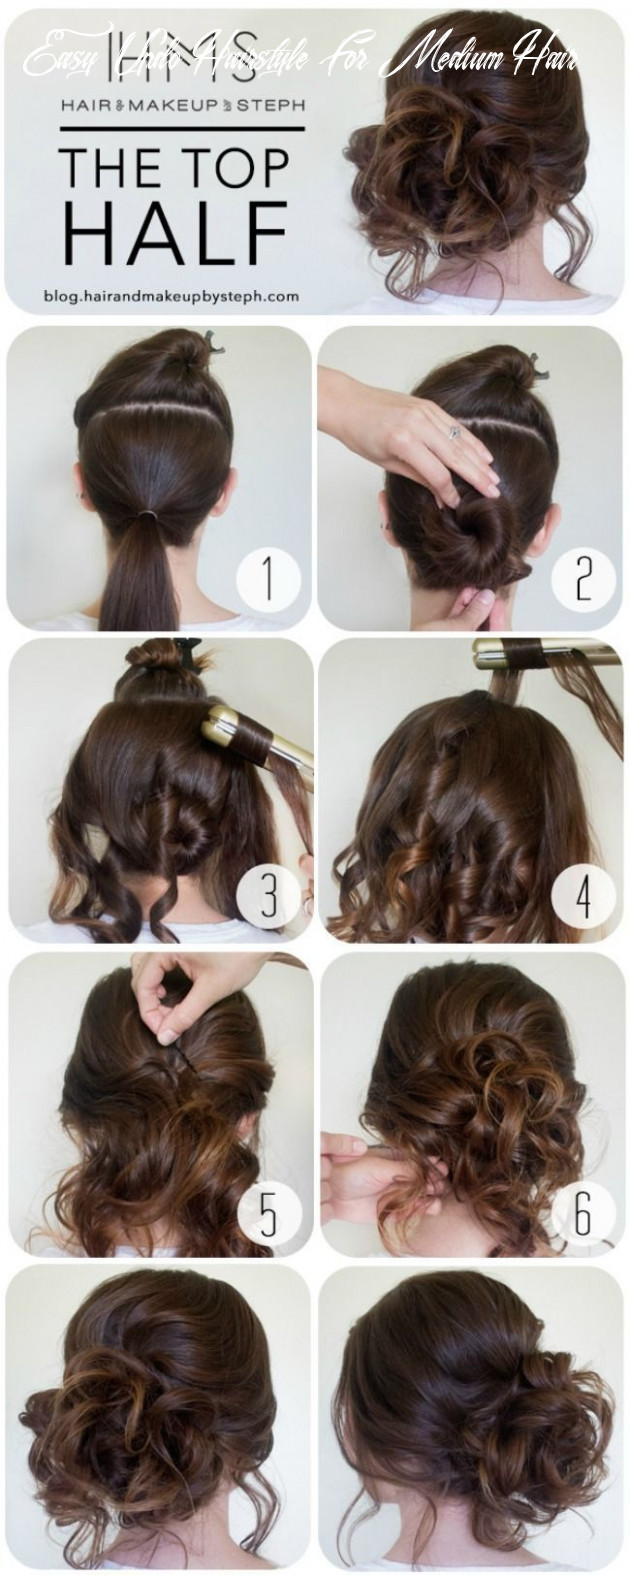 The 12 best easy updo hairstyles (with images) | diy hairstyles easy easy updo hairstyle for medium hair